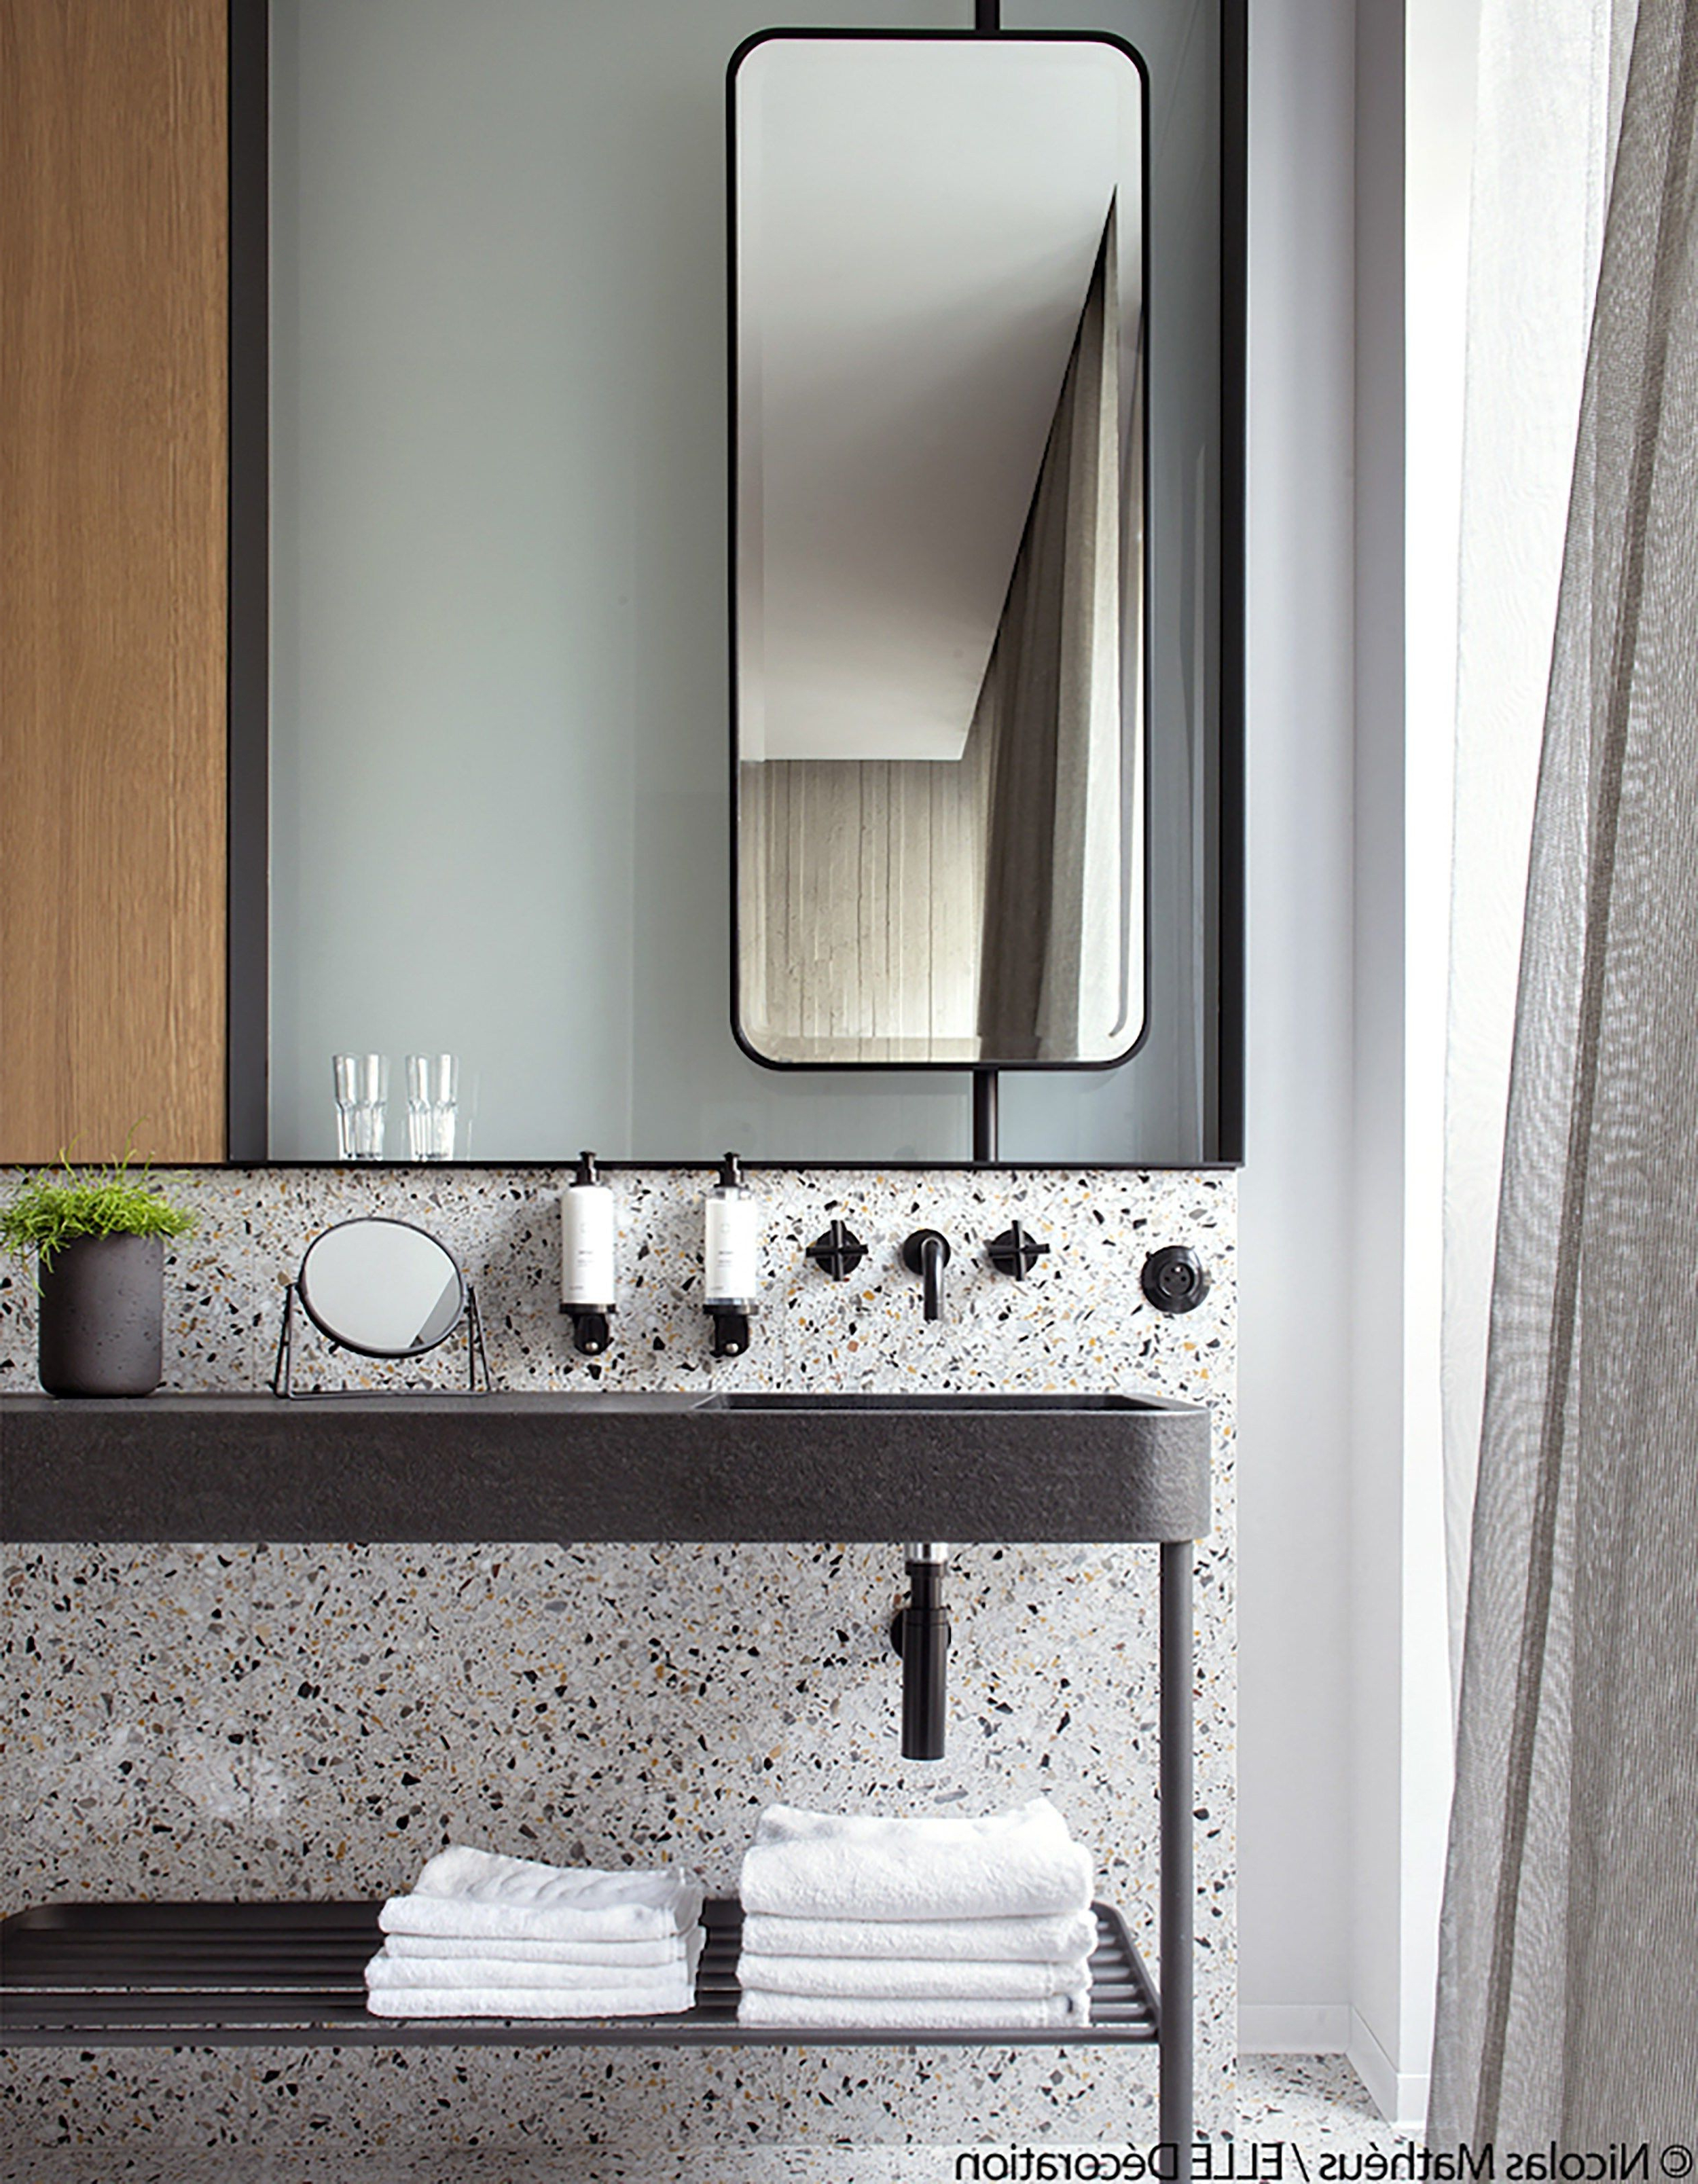 Widely Used Drawers Mirror Round Ideas Thin Wall Bath Full Long Rectangular With Regard To Long Narrow Wall Mirrors (View 14 of 20)